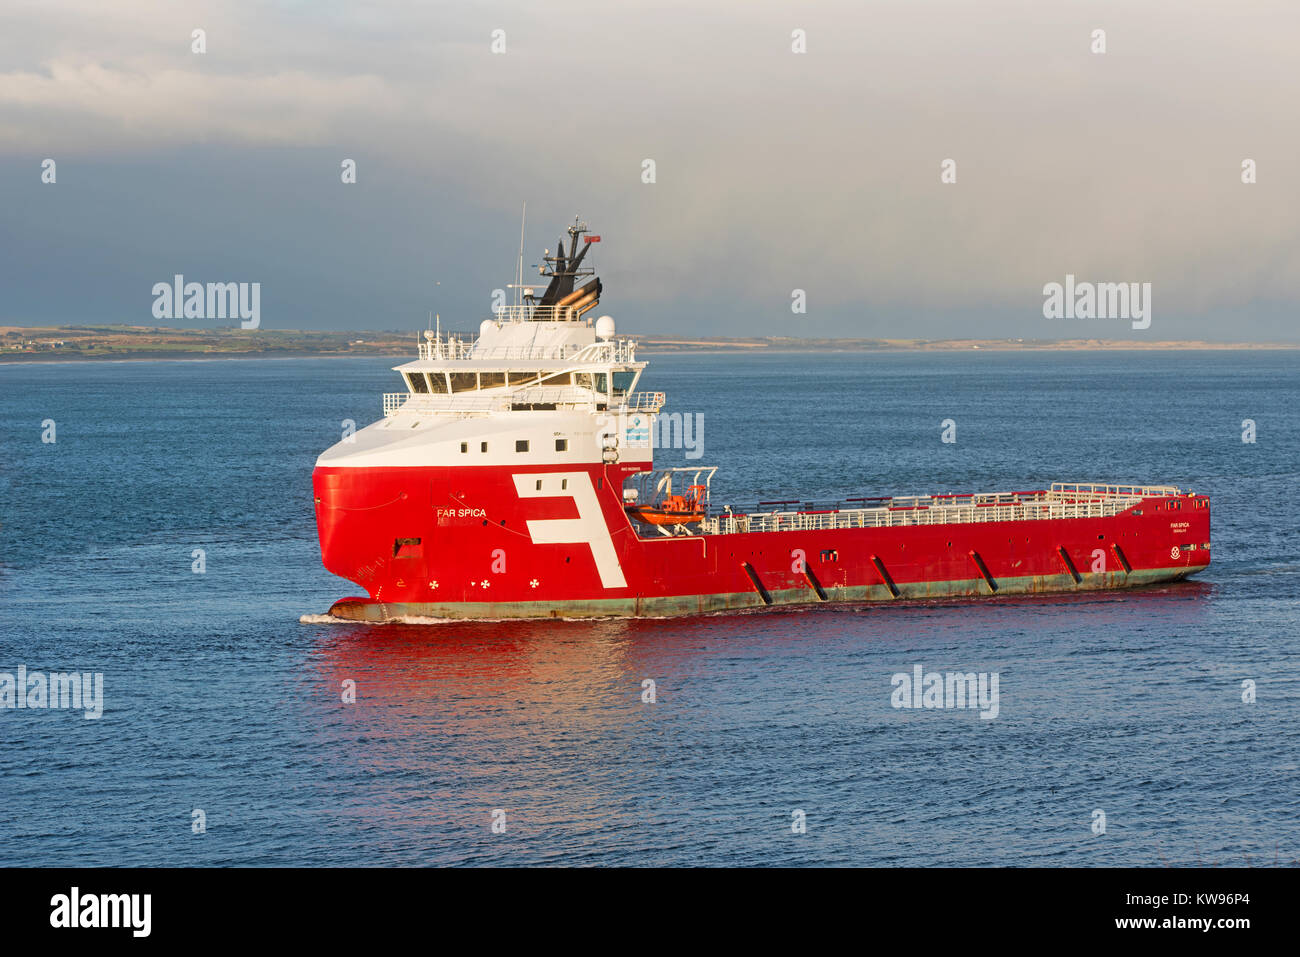 Draught 5 3m Stock Photos & Draught 5 3m Stock Images - Alamy